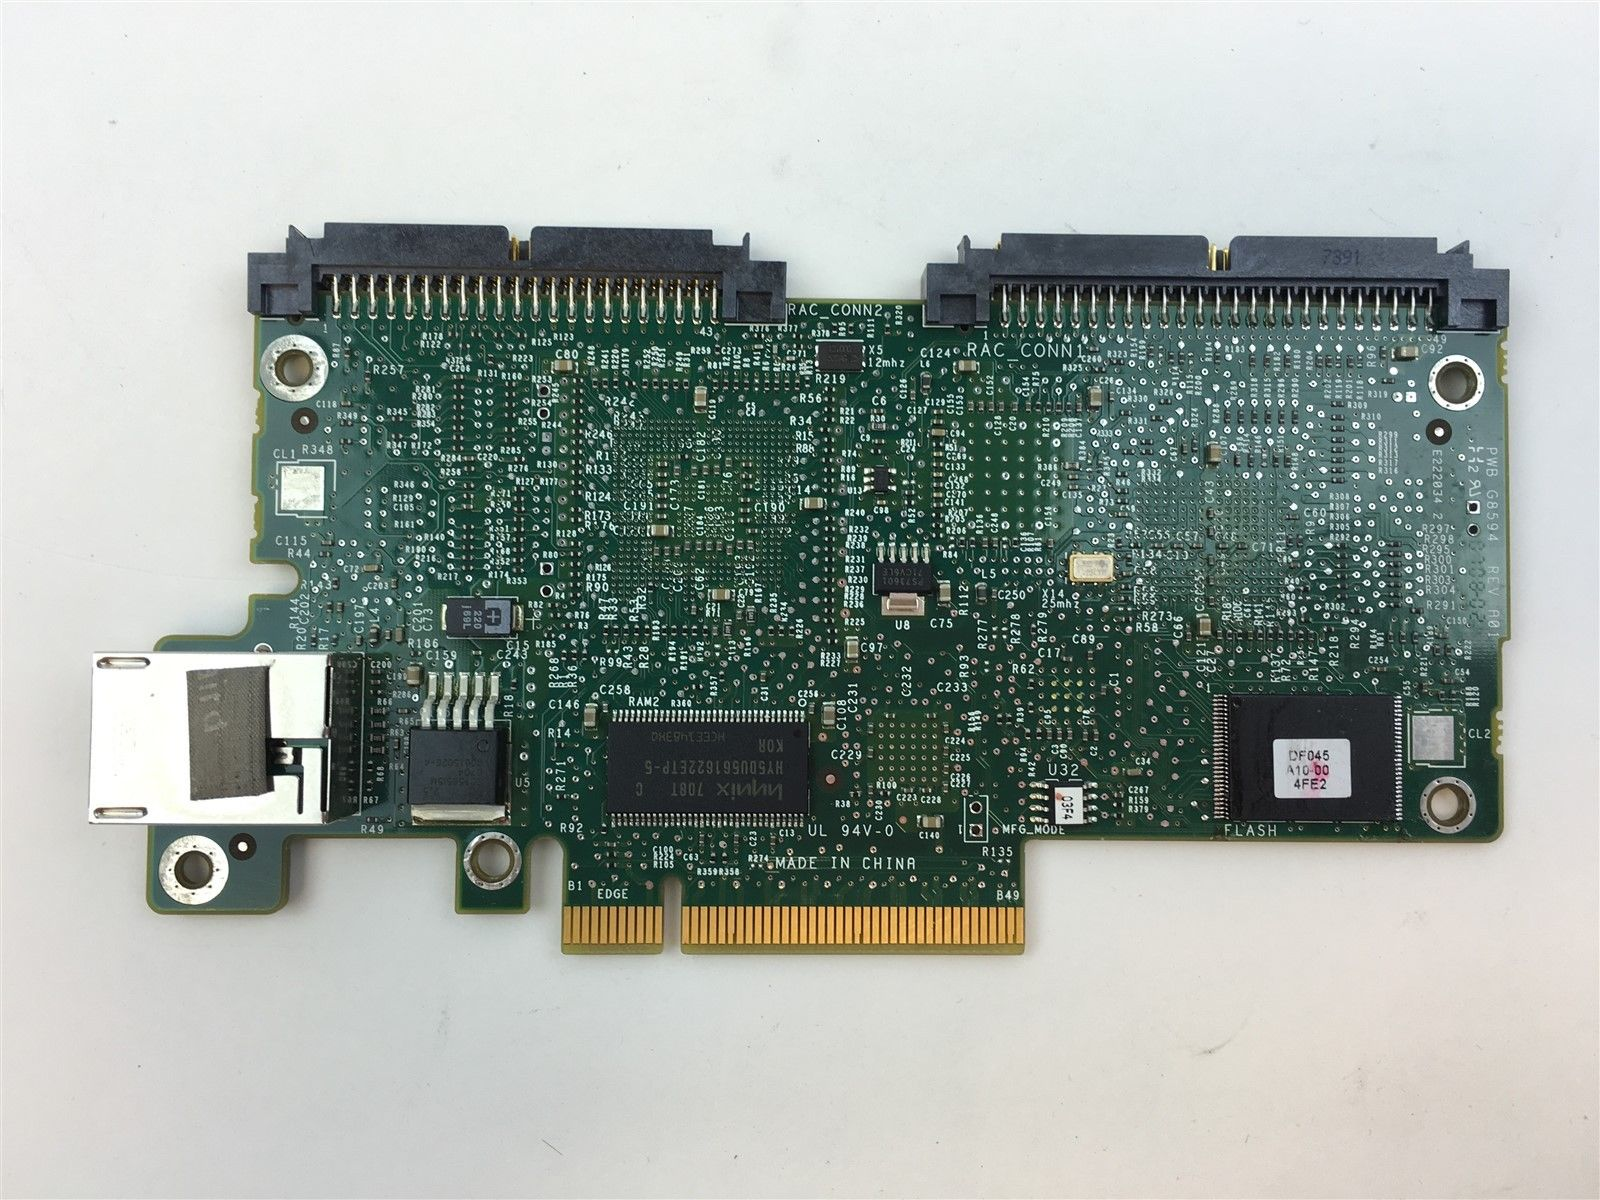 Dell PowerEdge 2950 1950 Server DRAC 5 Access Controller Card Board G8593 0G8593